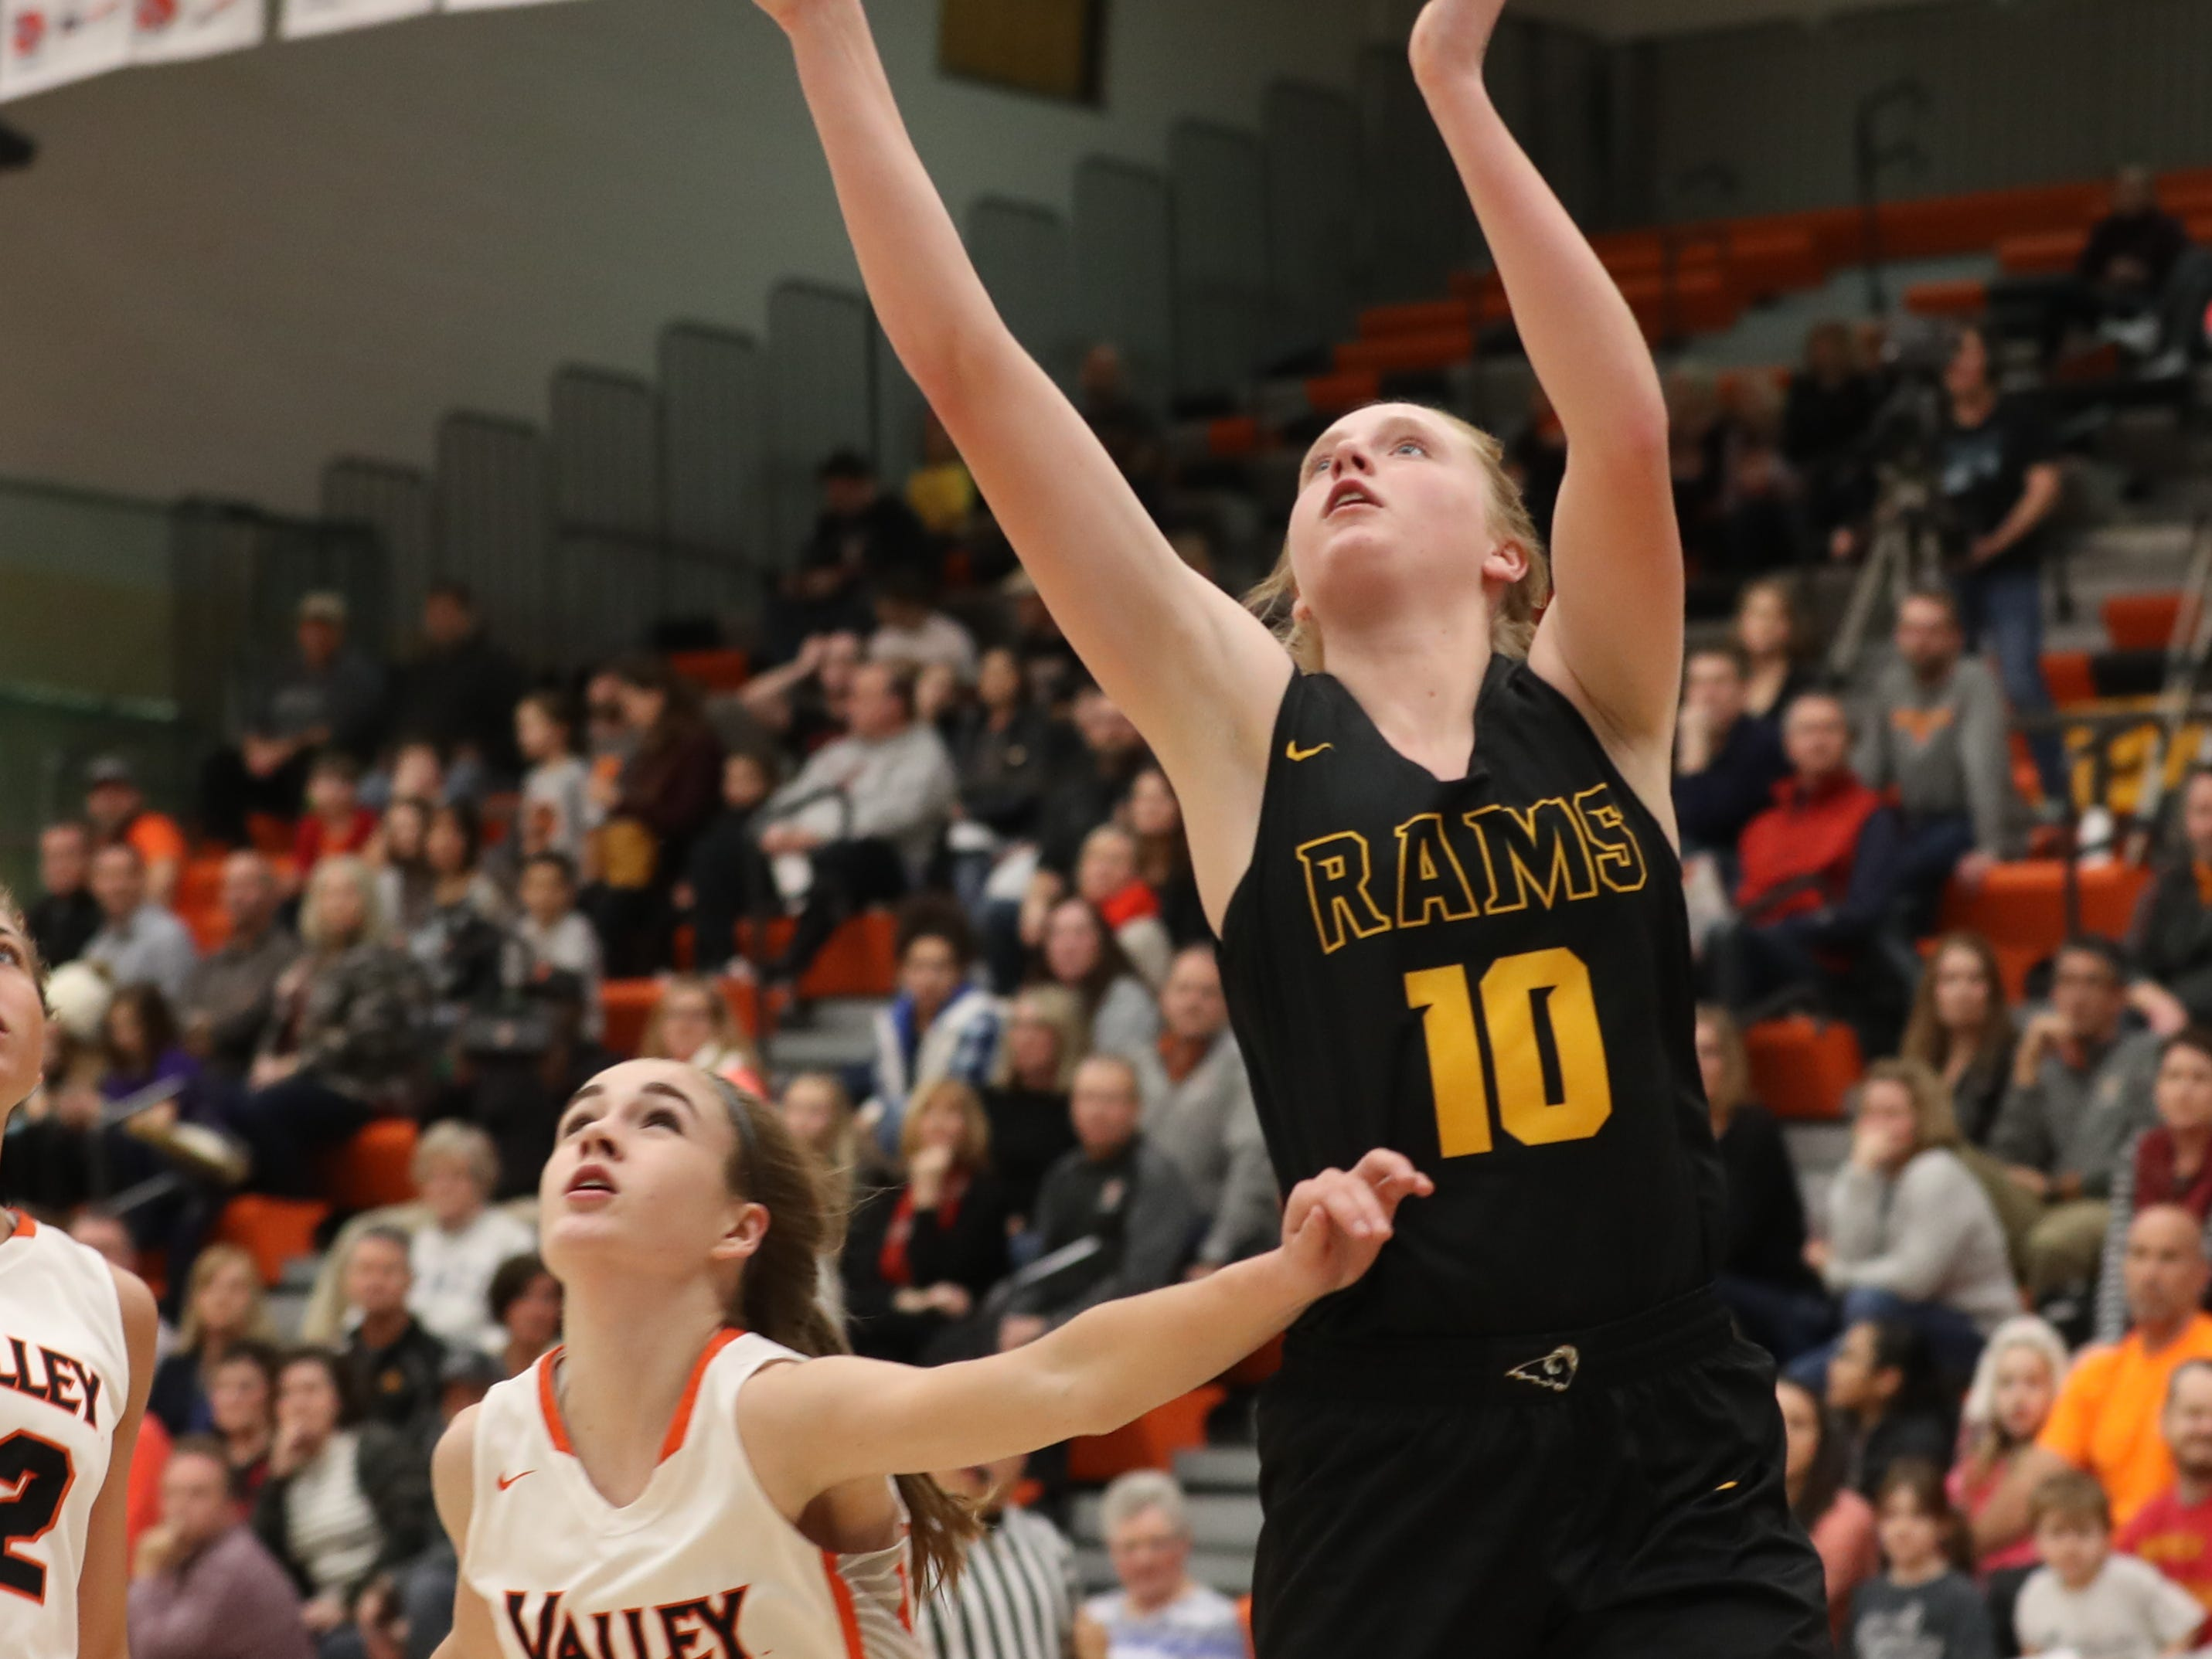 Southeast Polk Rams' Grace Larkins beats Valley Tigers' Hayley Chappell during a girls basketball game at Valley High School on Jan. 11, 2019.